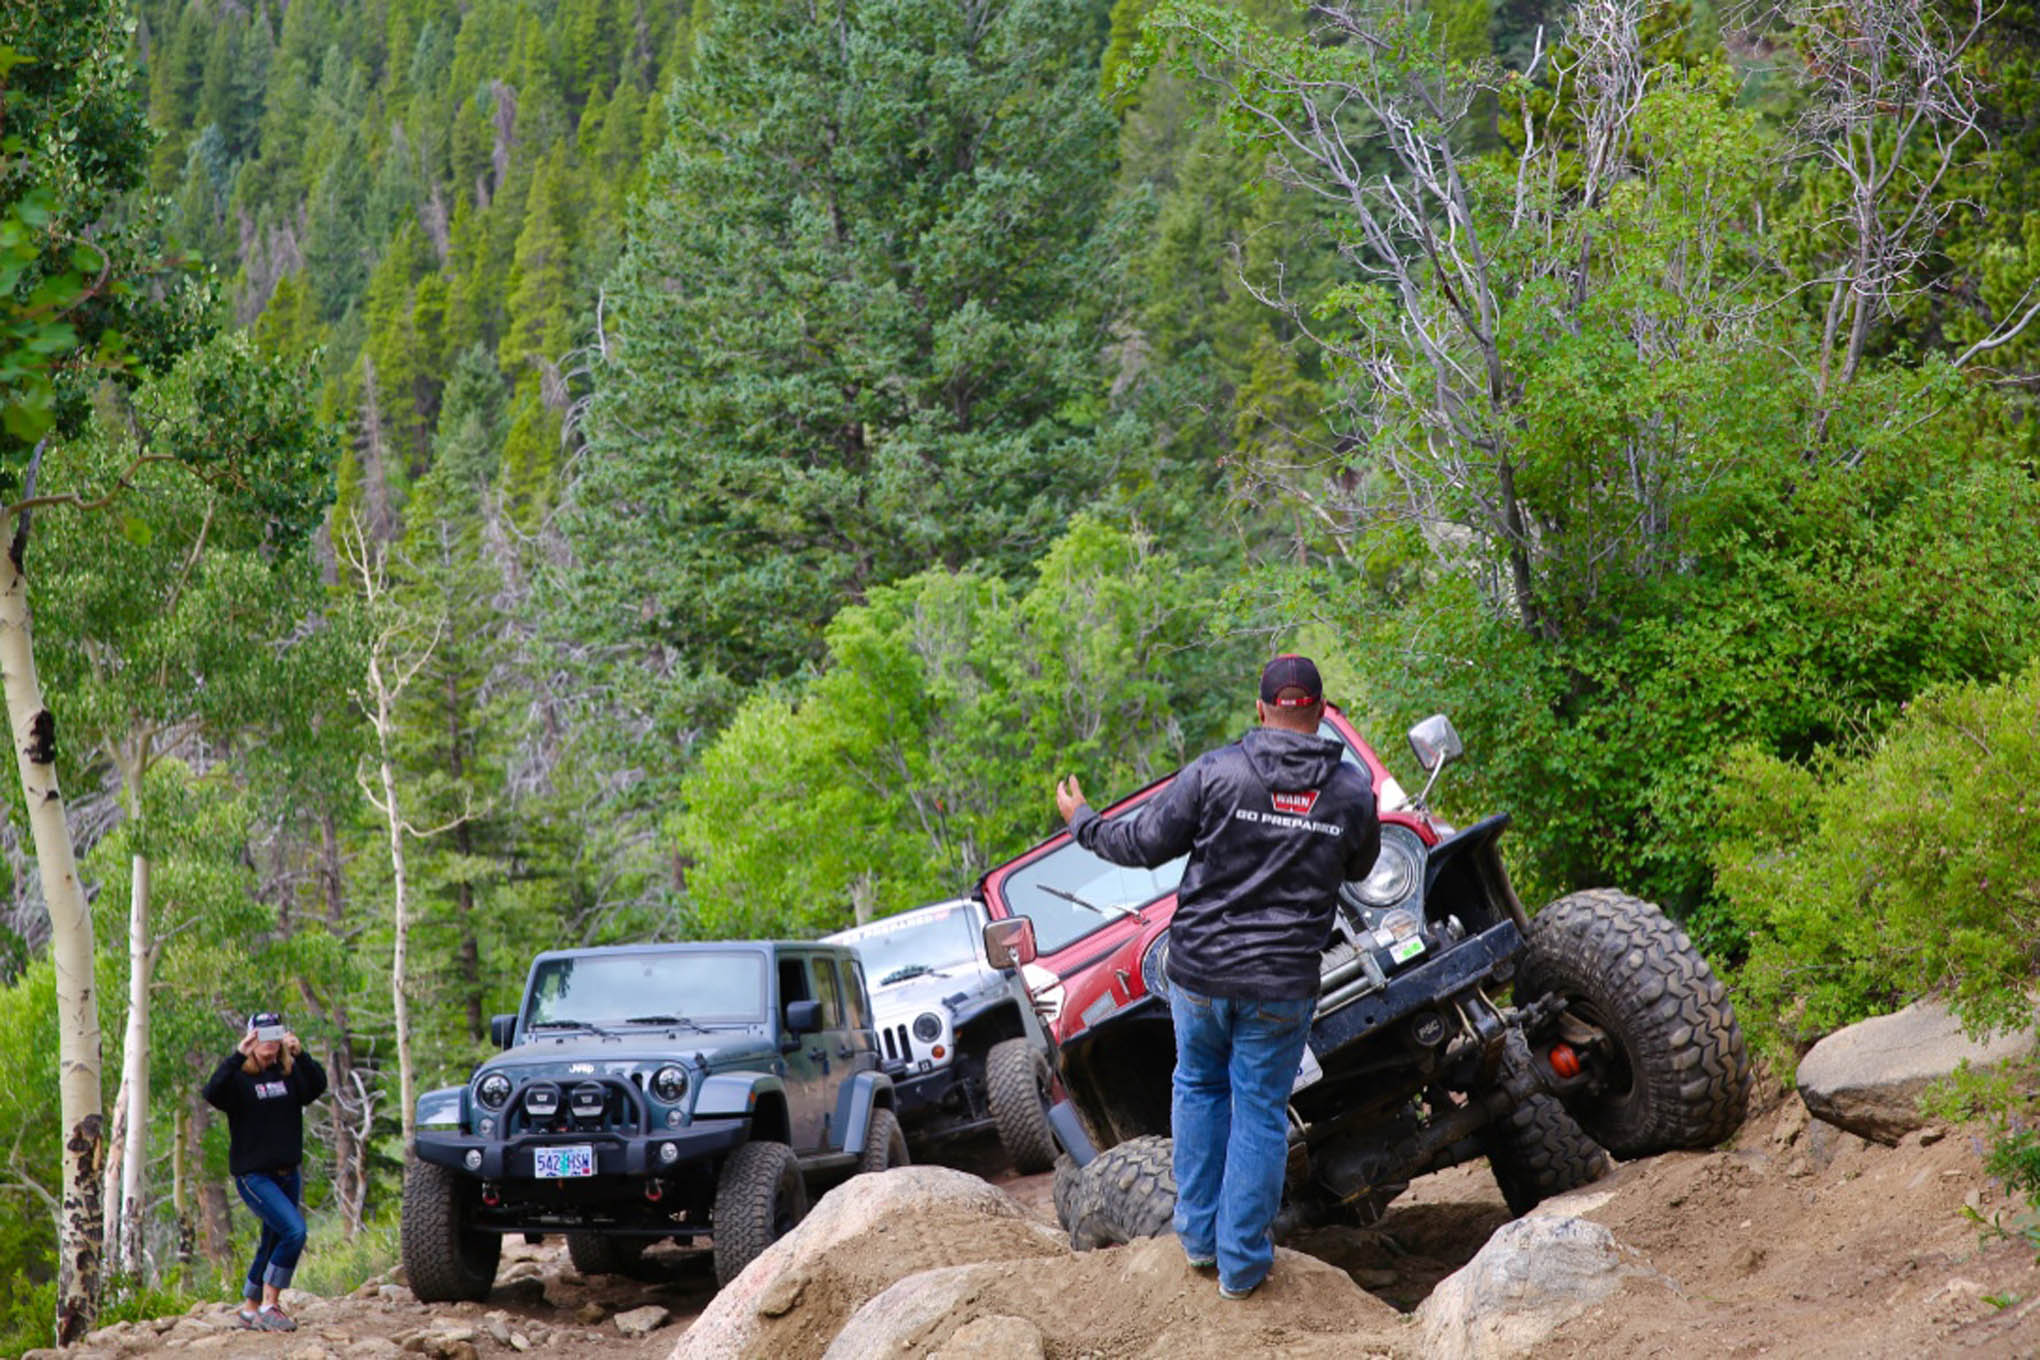 A member of the Warn crew spots for Dan Cavanaugh on a rocky section of Red Elephant Trail.